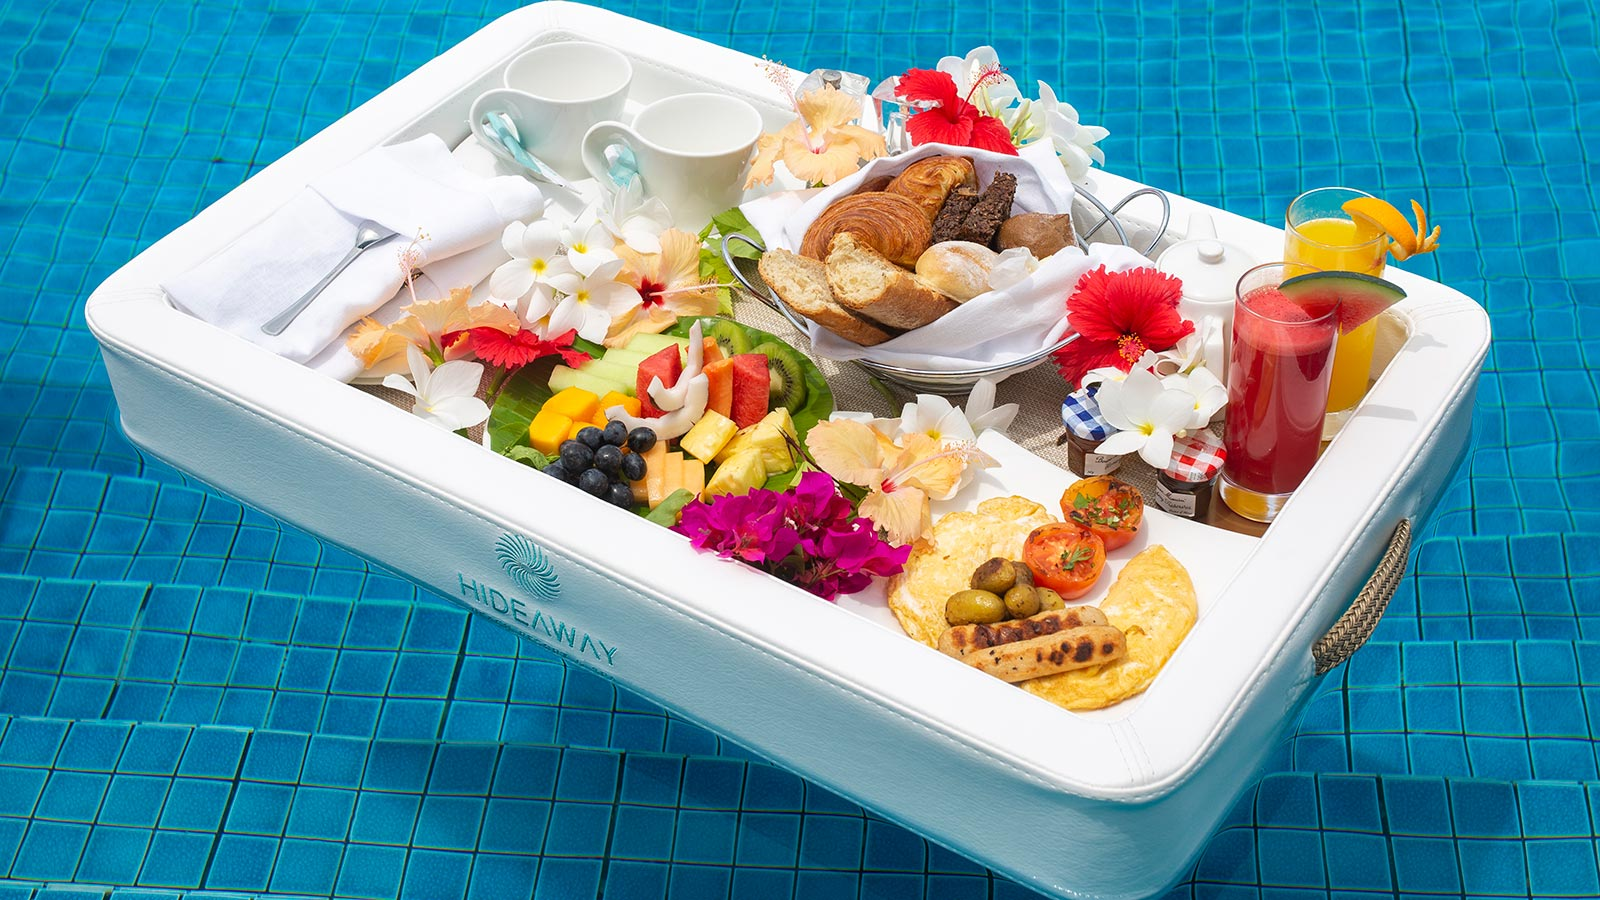 Experience a Floating Breakfast